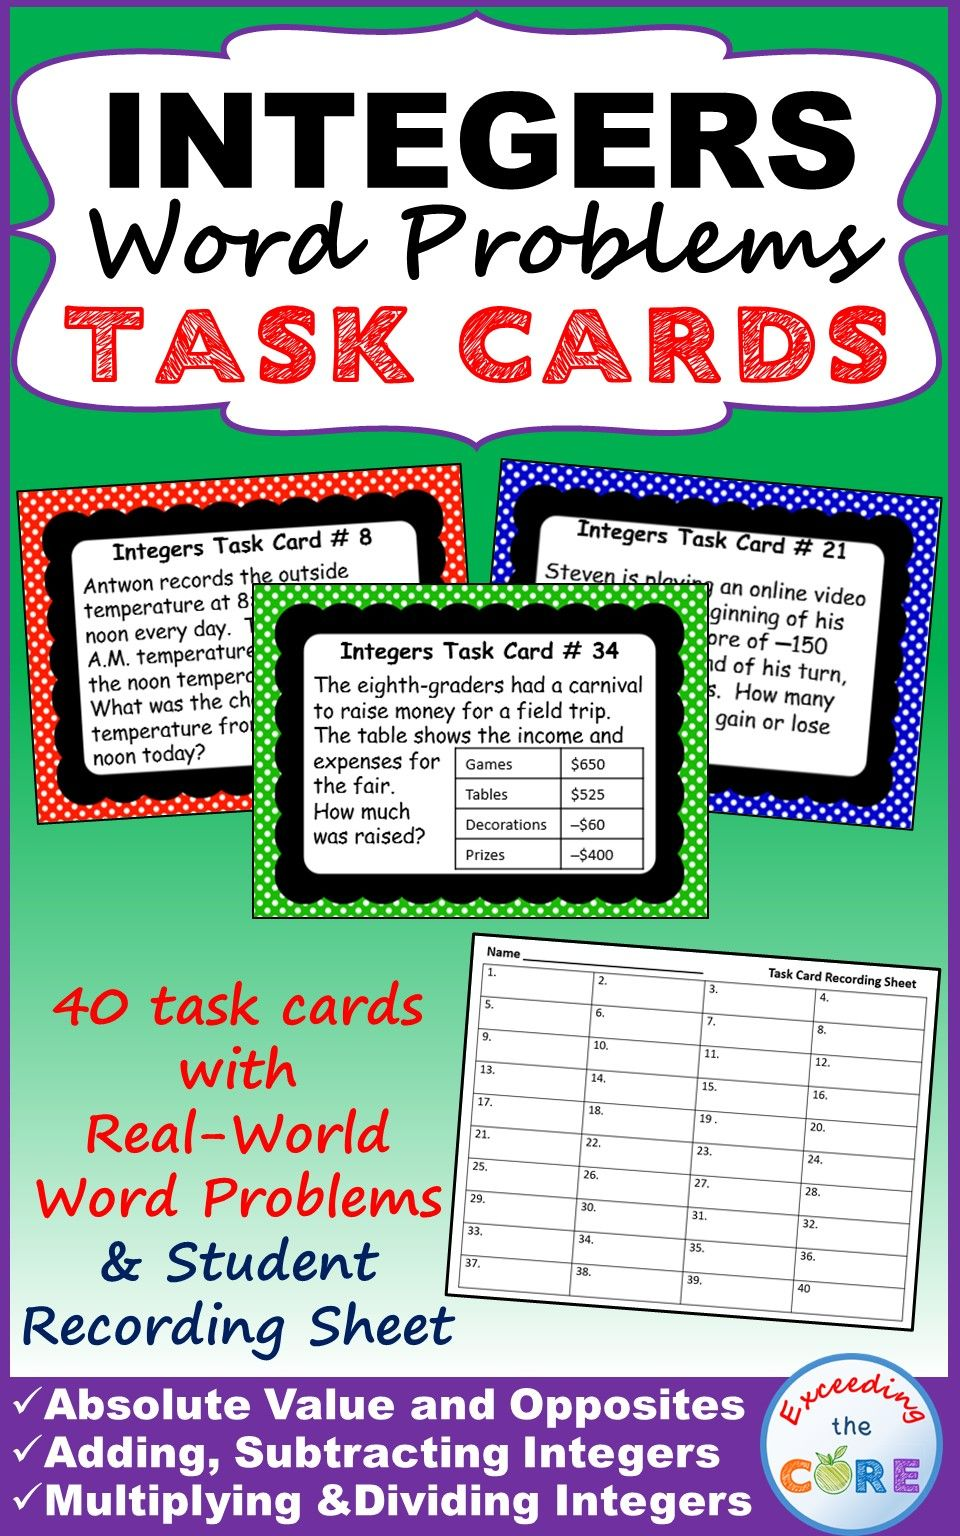 Integers Word Problems 40 Task Cards With Skills Practice And Real World Word Problems Topics Integers Word Problems Word Problems Word Problems Task Cards Adding and subtracting integers word